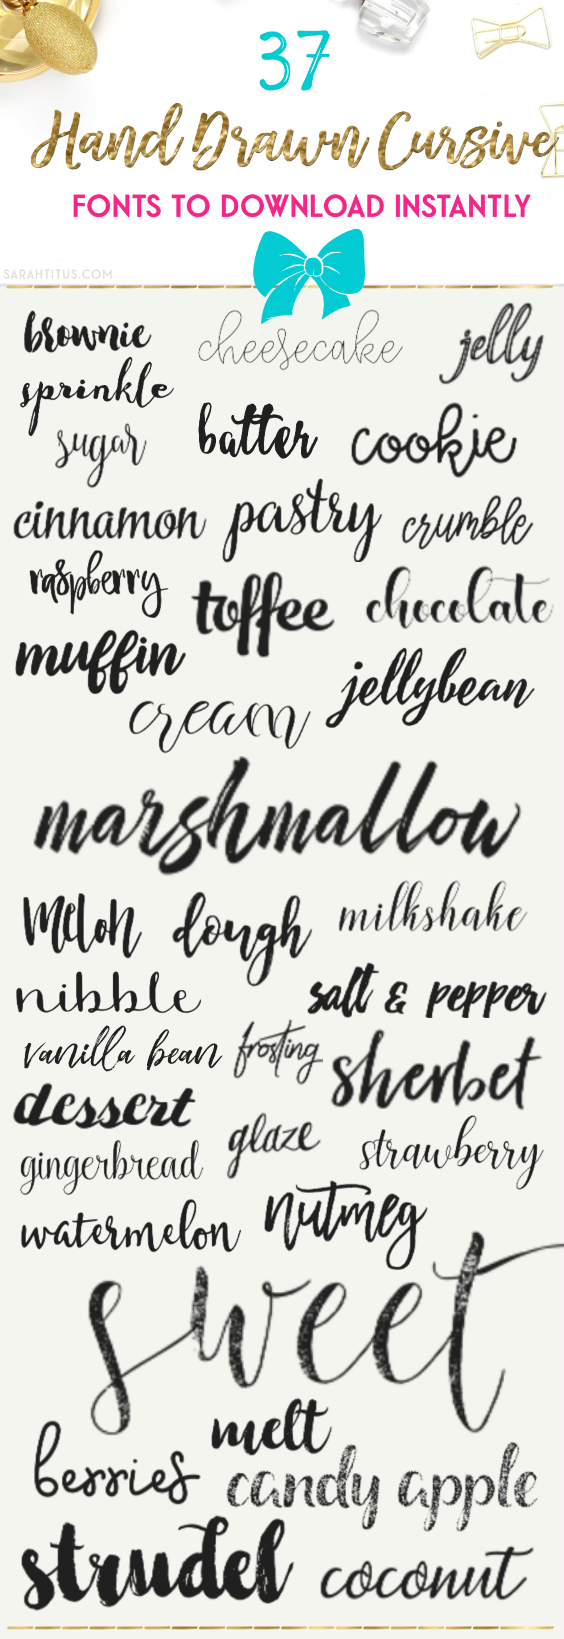 Examples of Hand Drawn Cursive Fonts to download